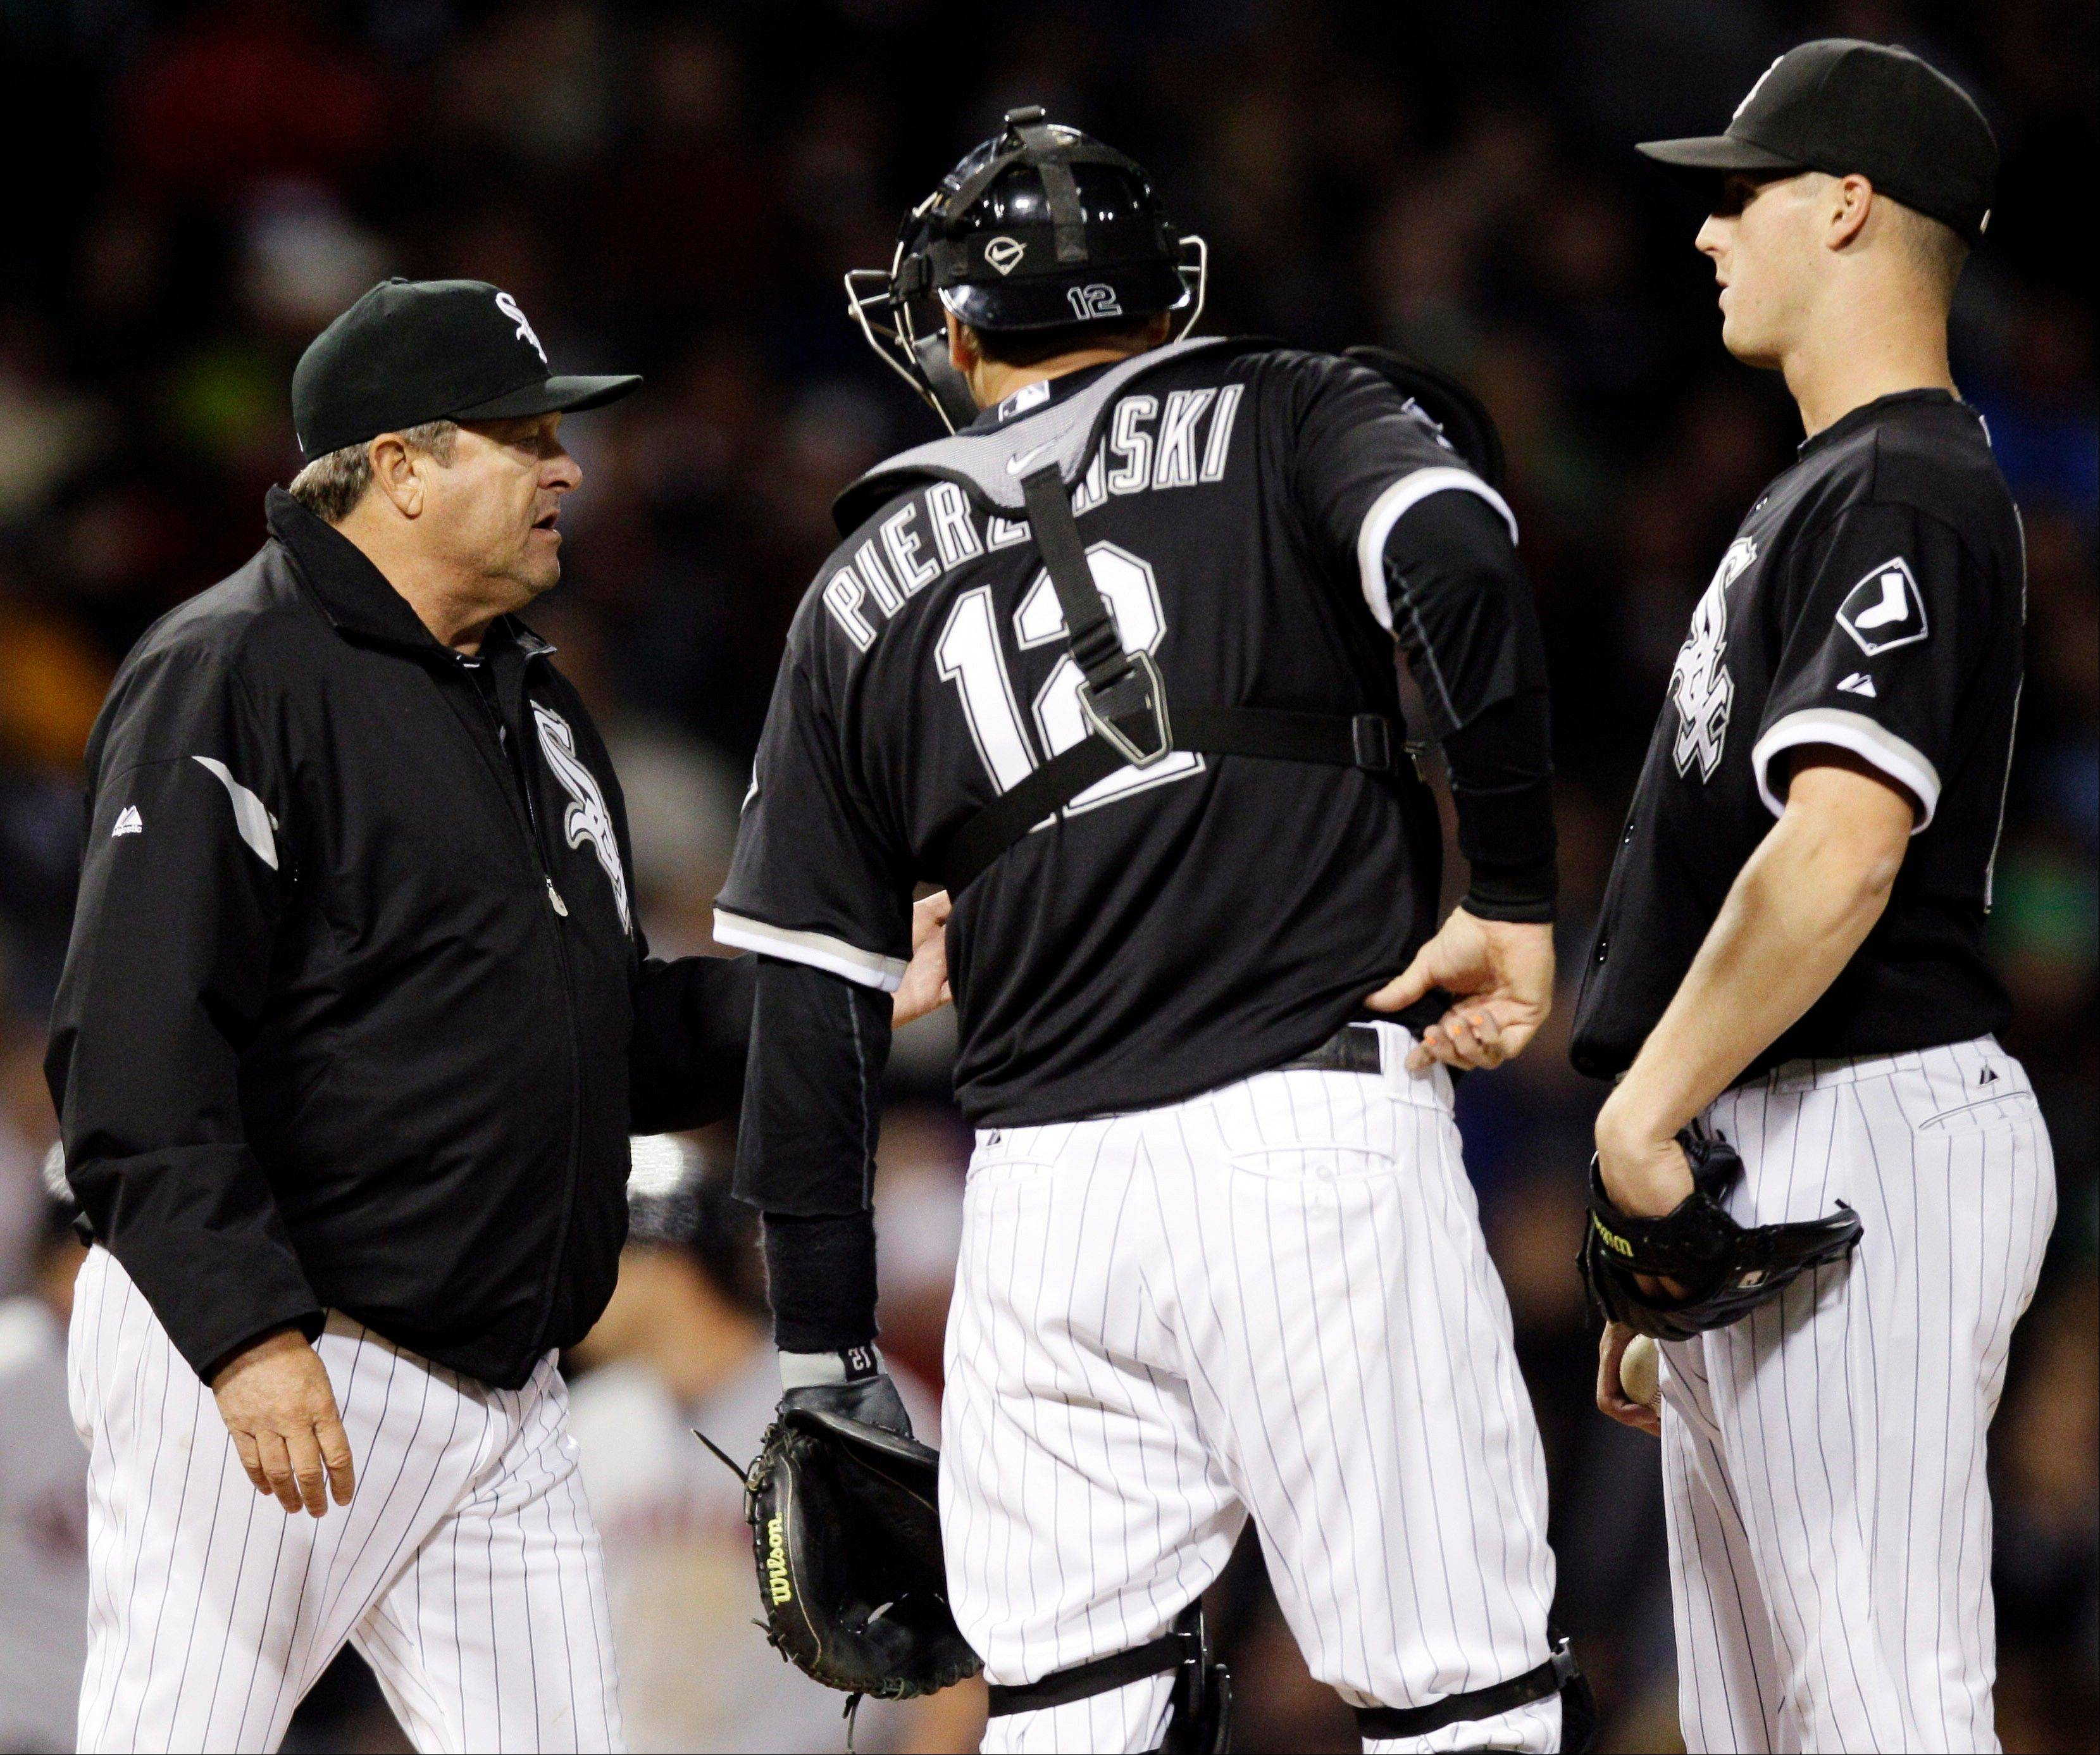 White Sox pitching coach Don Cooper, left, talks with catcher A.J. Pierzynski, center, and relief pitcher Nate Jones Wednesday during the sixth inning against the Cleveland Indians.